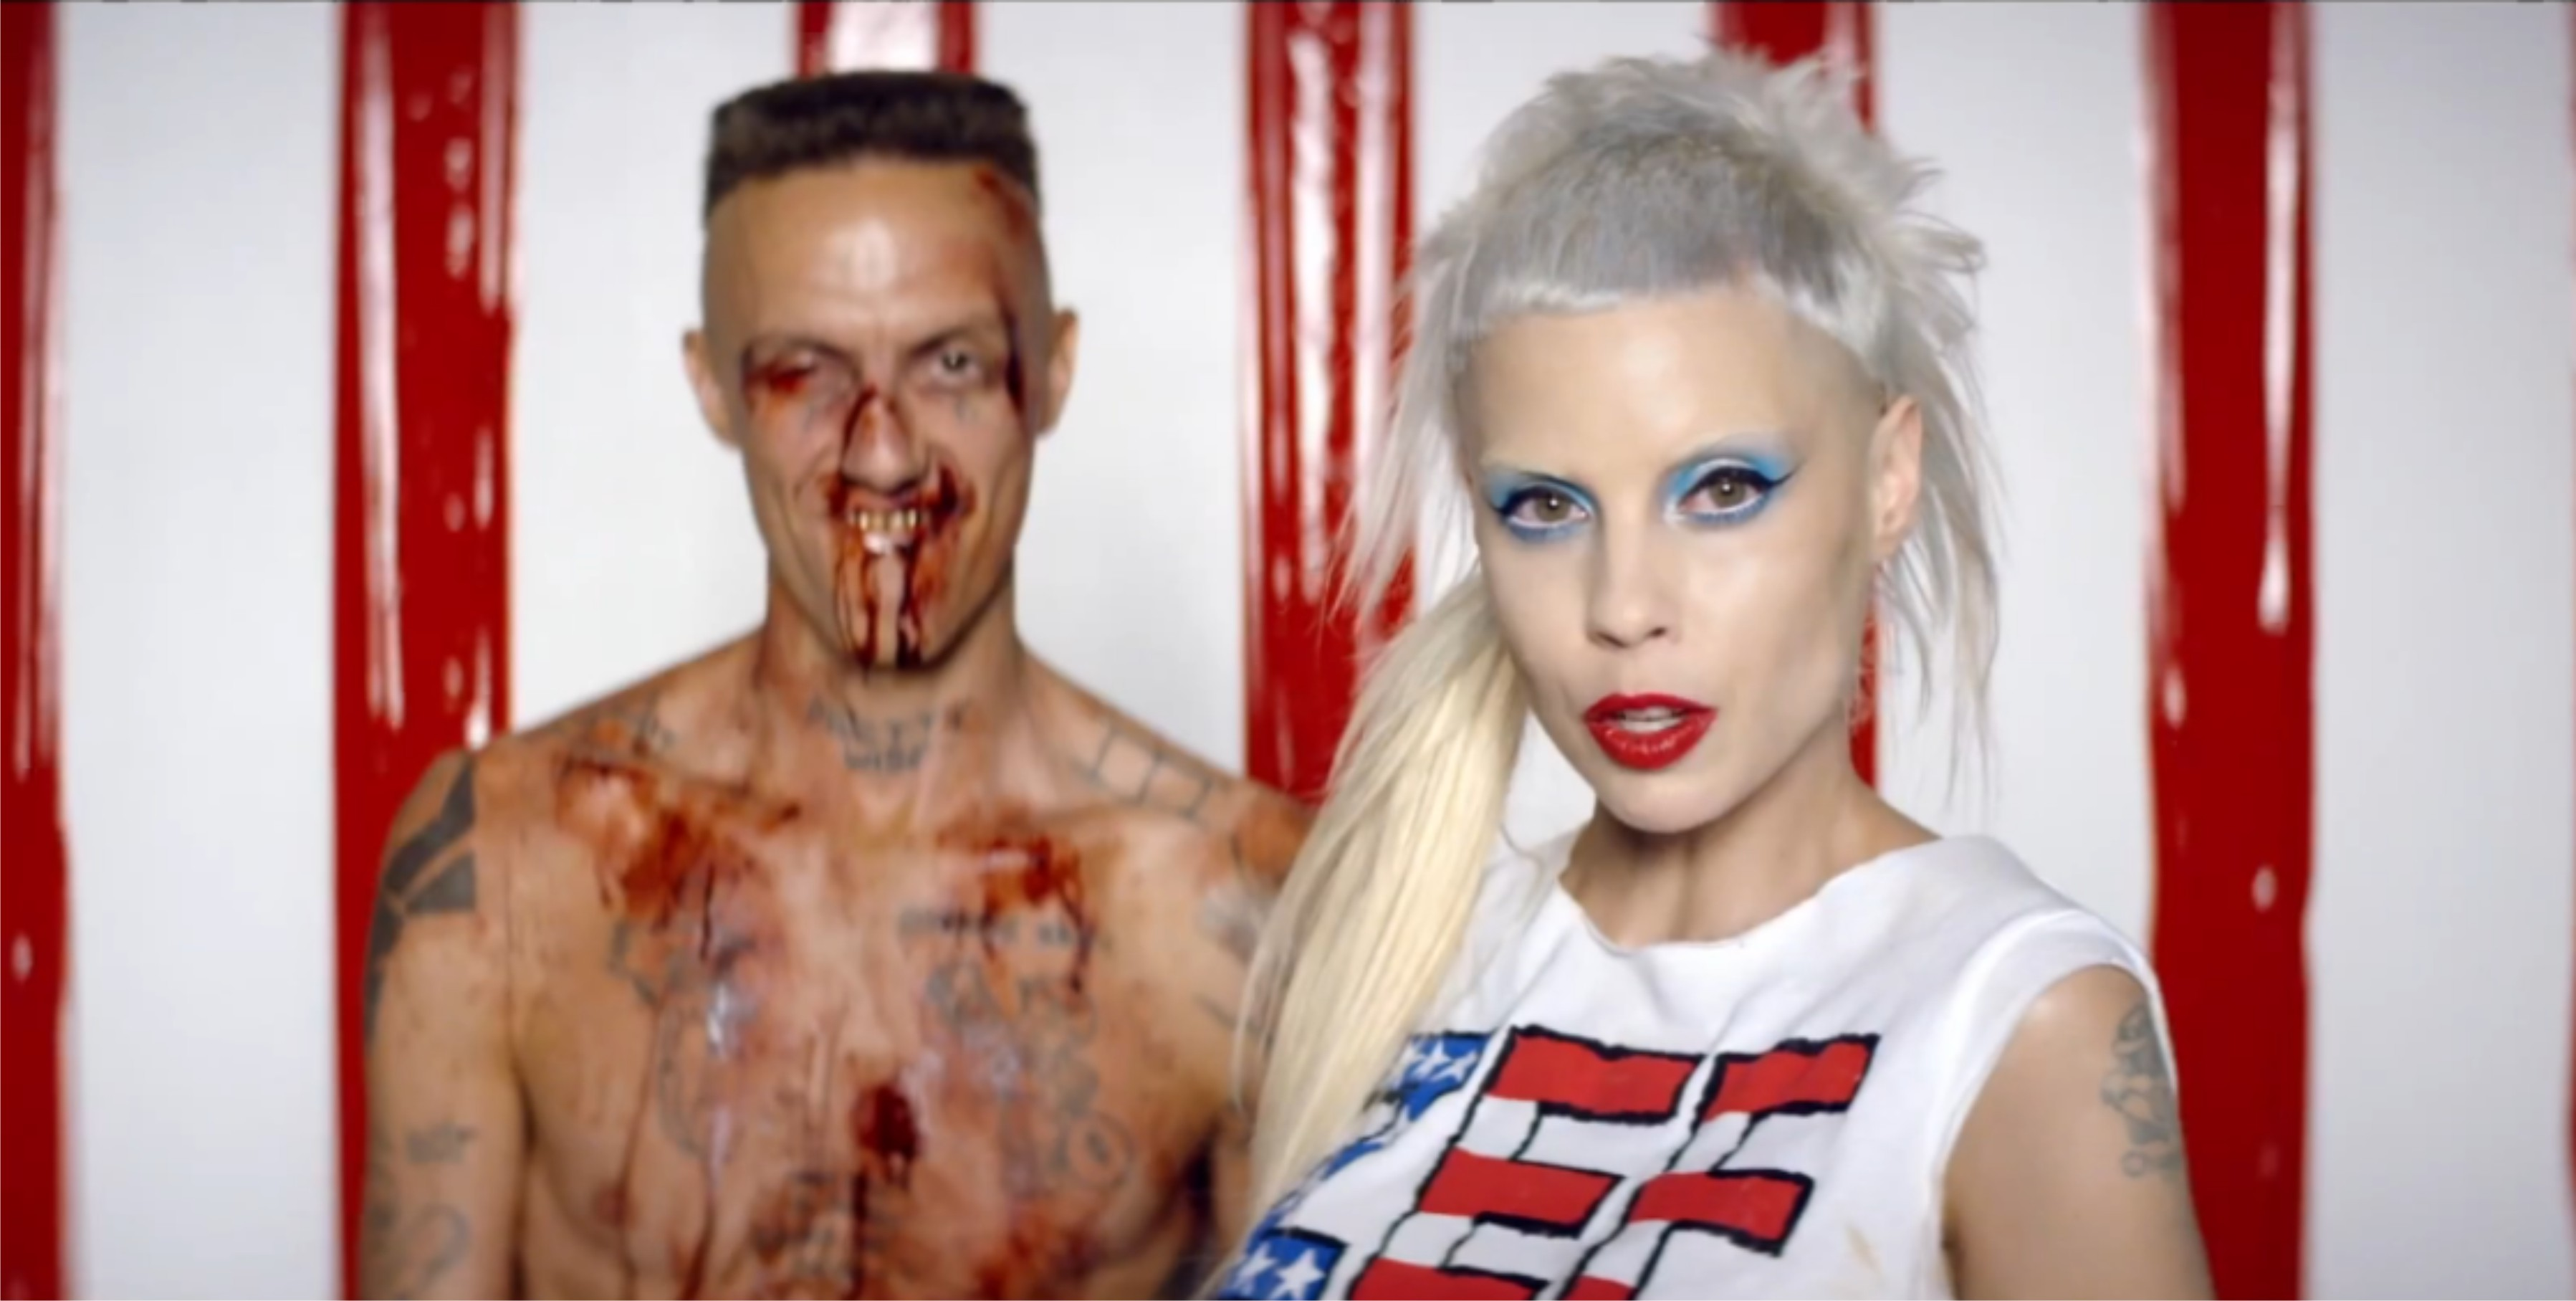 Die Antwoord release their Ugly Boy Music Video to their South African music fans